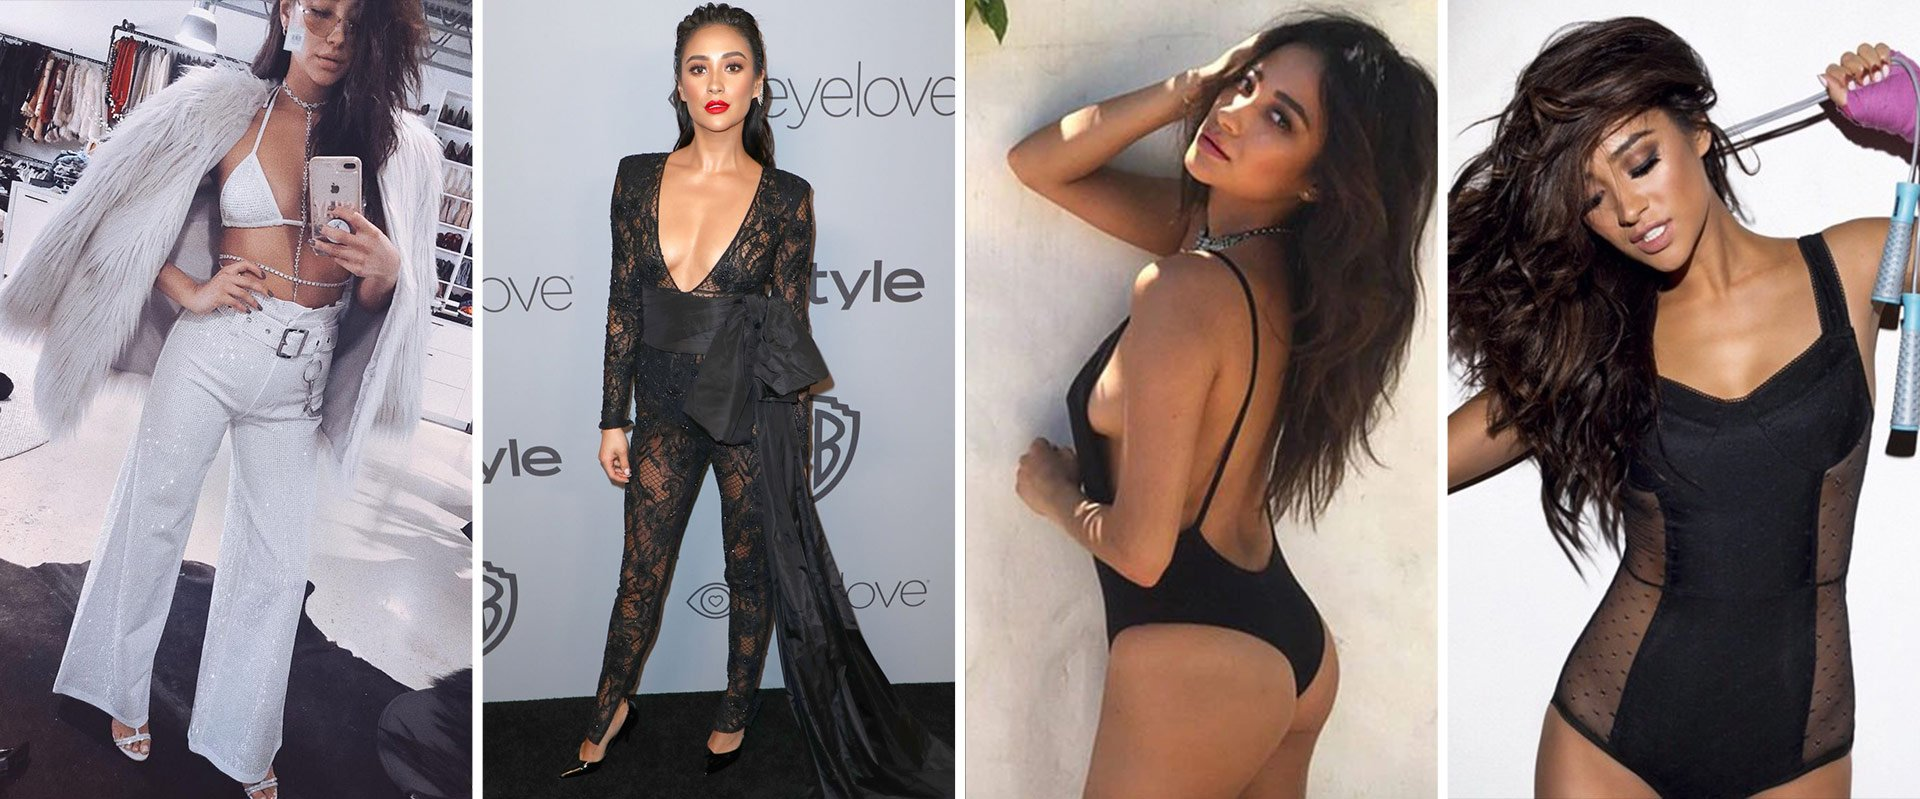 Shay Mitchell shows us how to make lingerie and swimsuits part of our daily style